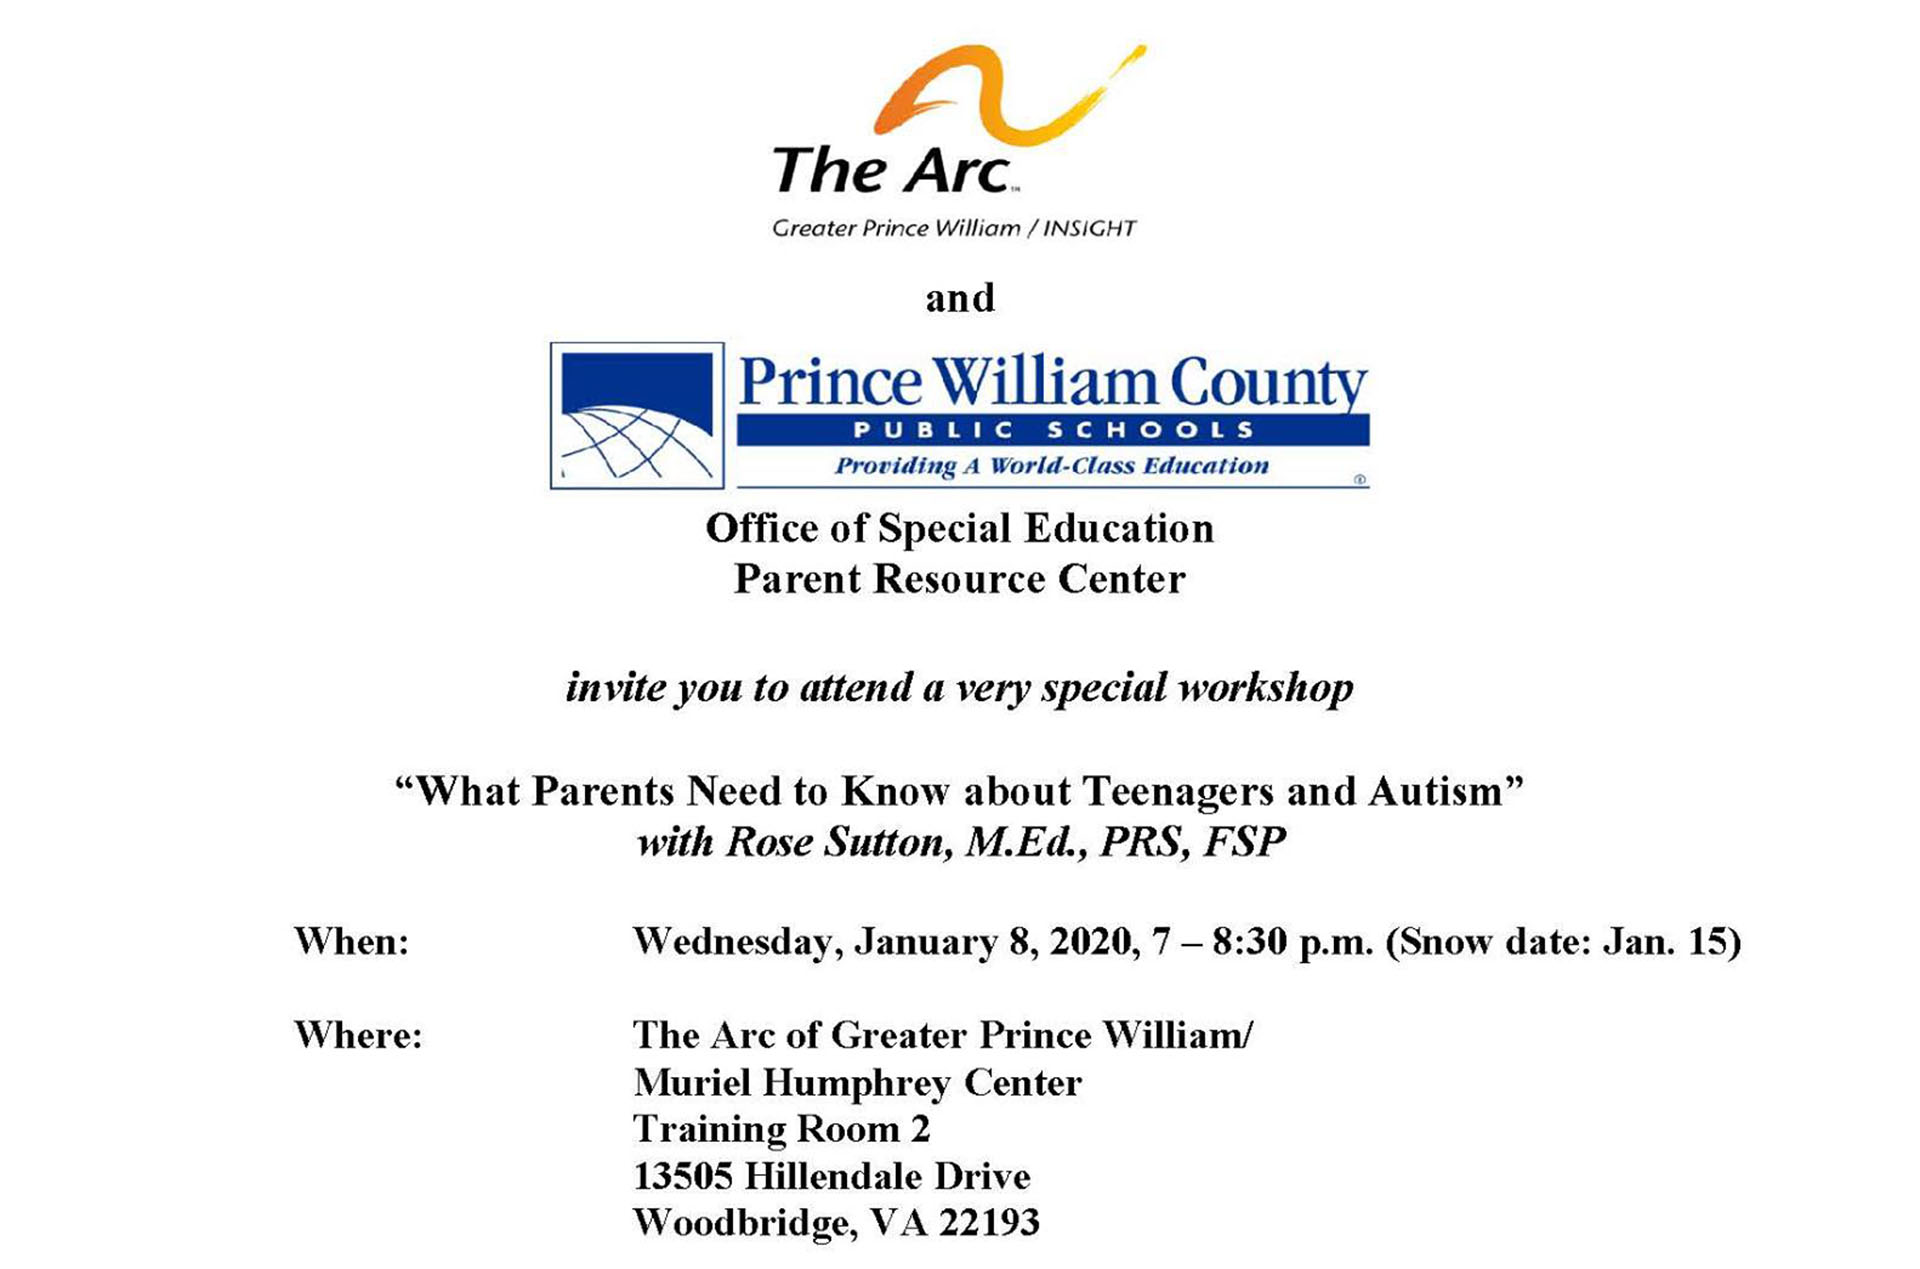 Workshop for parents of teenagers who have autism being held in Dale City